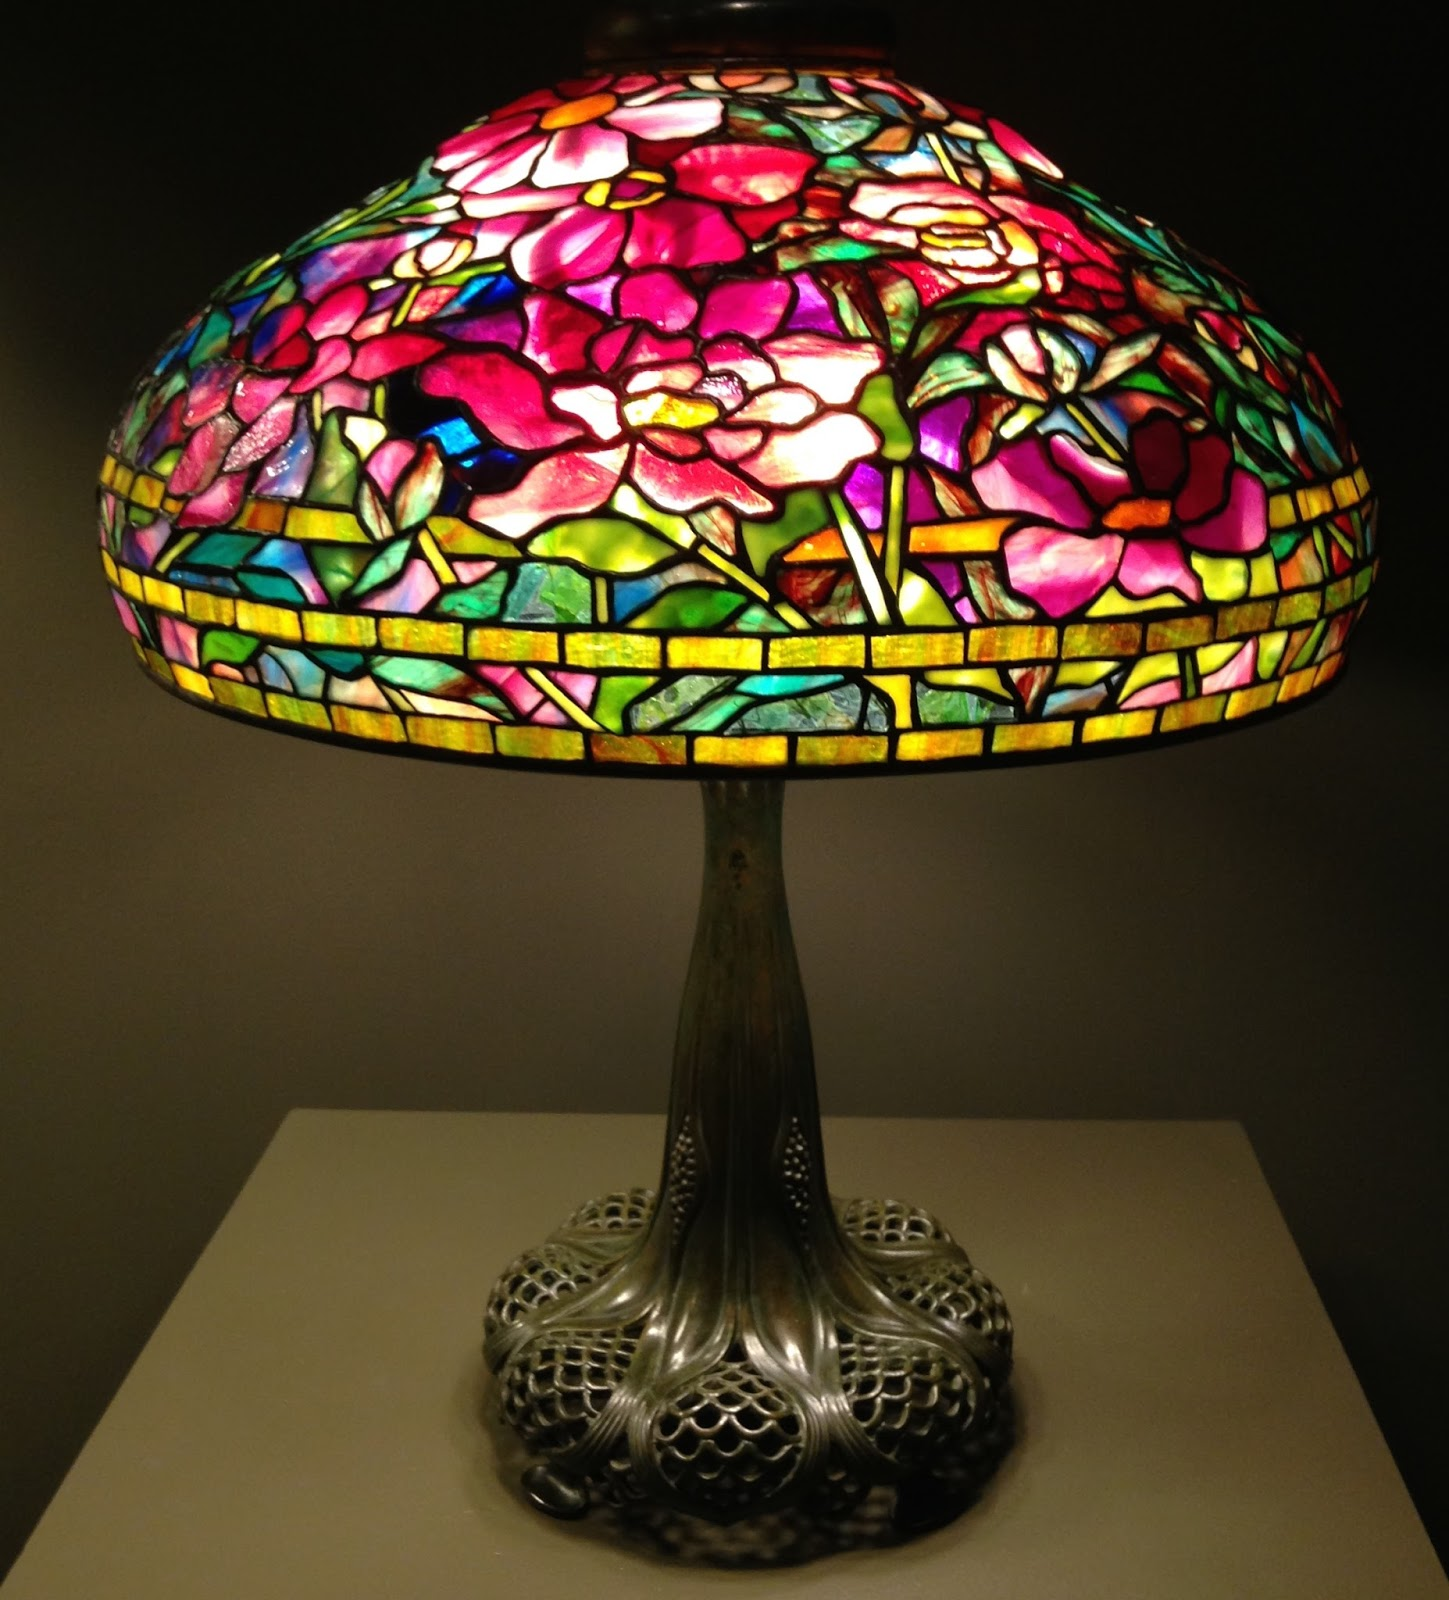 Delightful Beautiful Leaded Glass Lamps By Louis Comfort Tiffany, C. 1905 1910